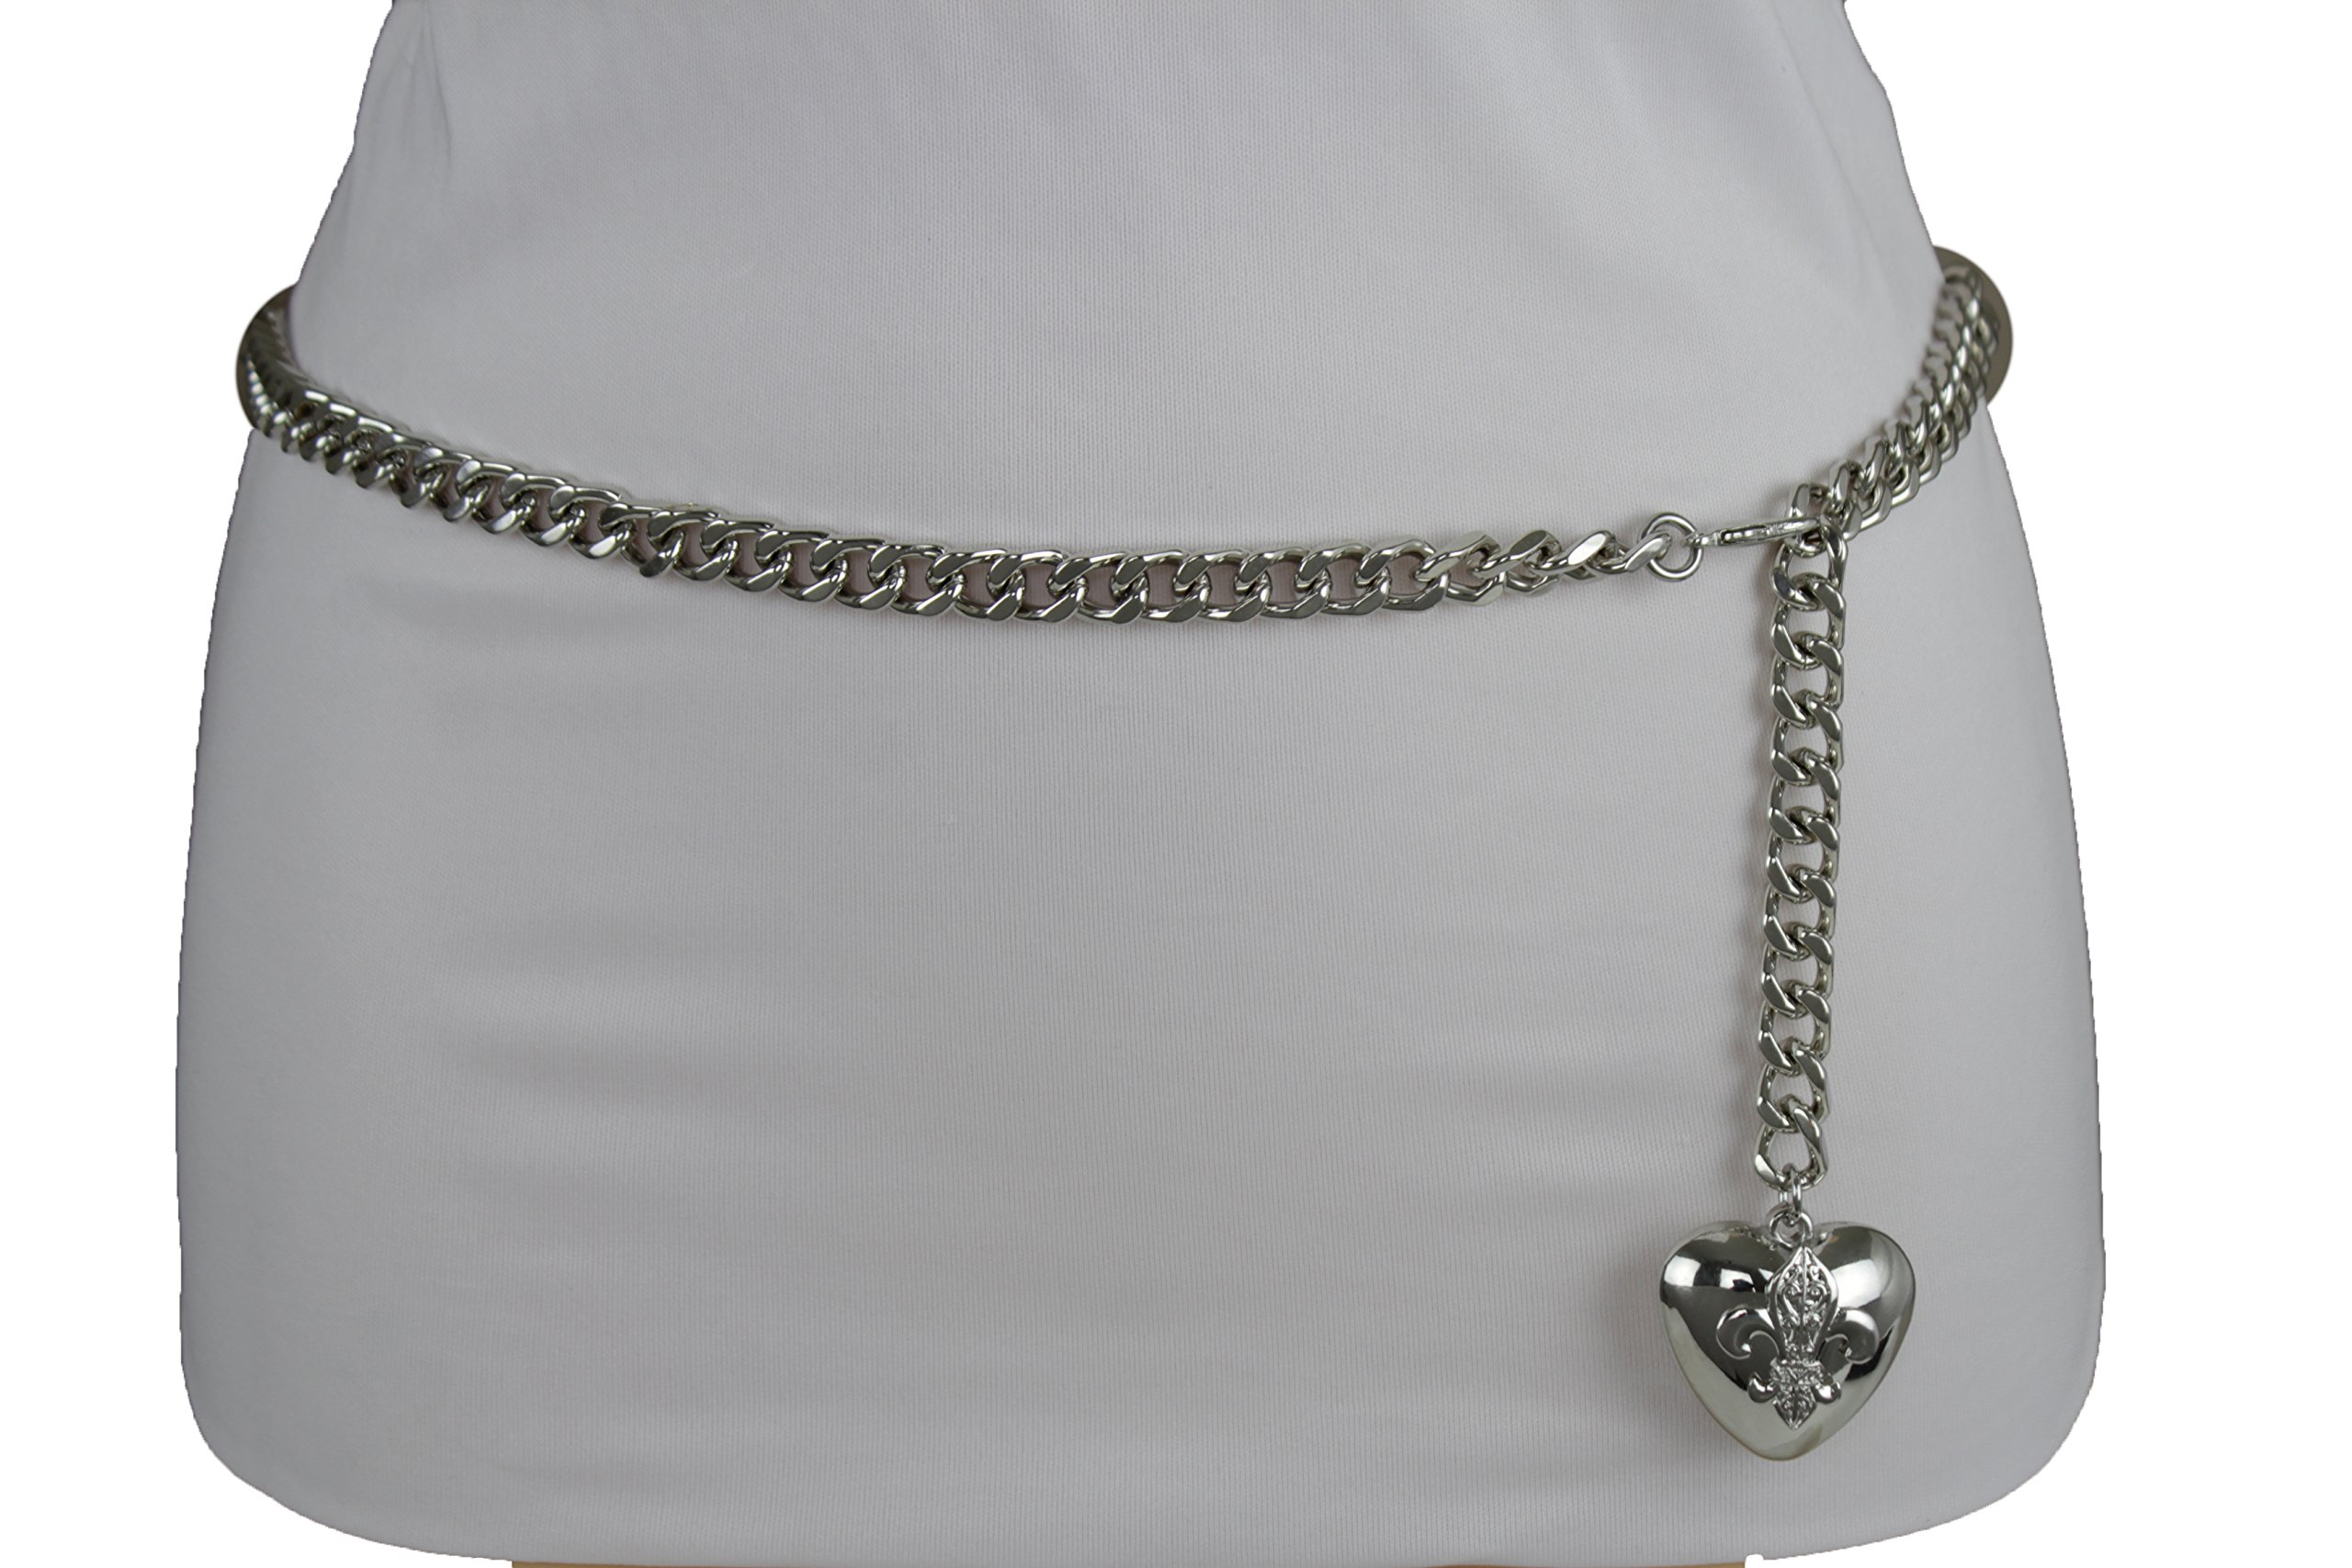 TFJ Women Fashion Skinny Belt Narrow Hip High Waist Silver Metal Chain Love Heart Buckle M L XL